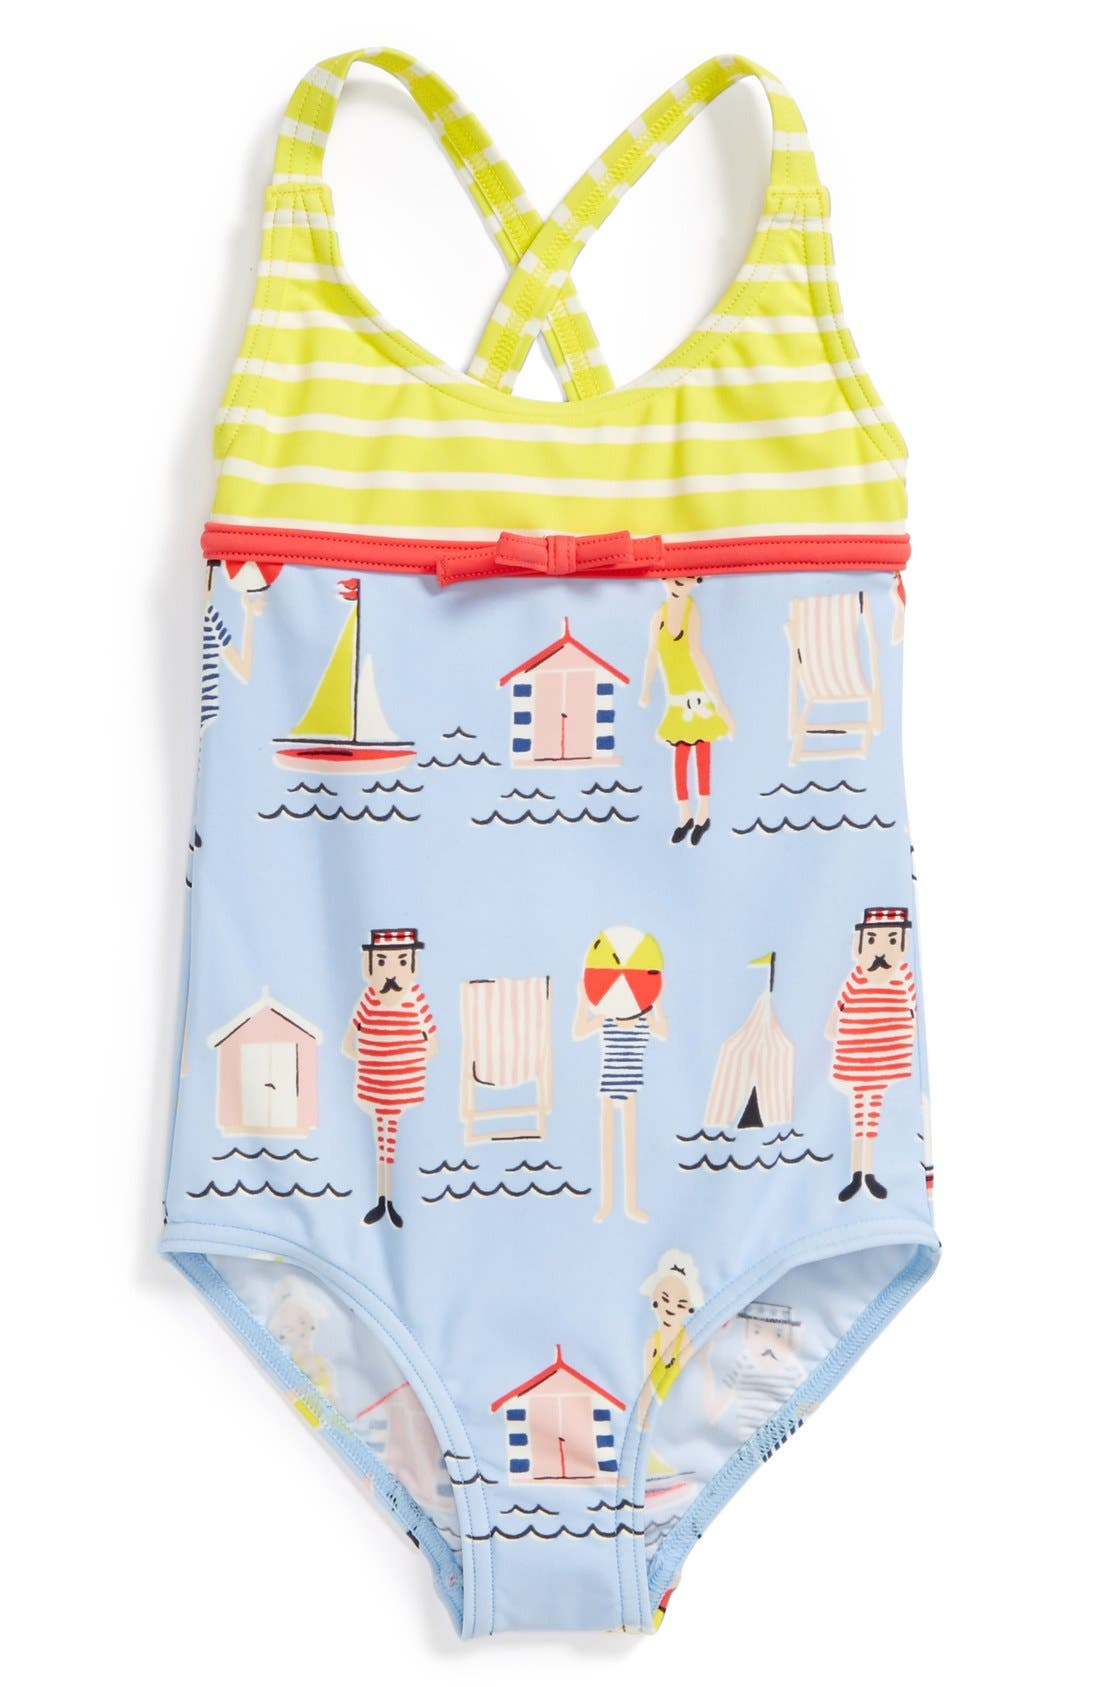 Alternate Image 1 Selected - Mini Boden 'Hotchpotch' One-Piece Swimsuit (Toddler Girls)